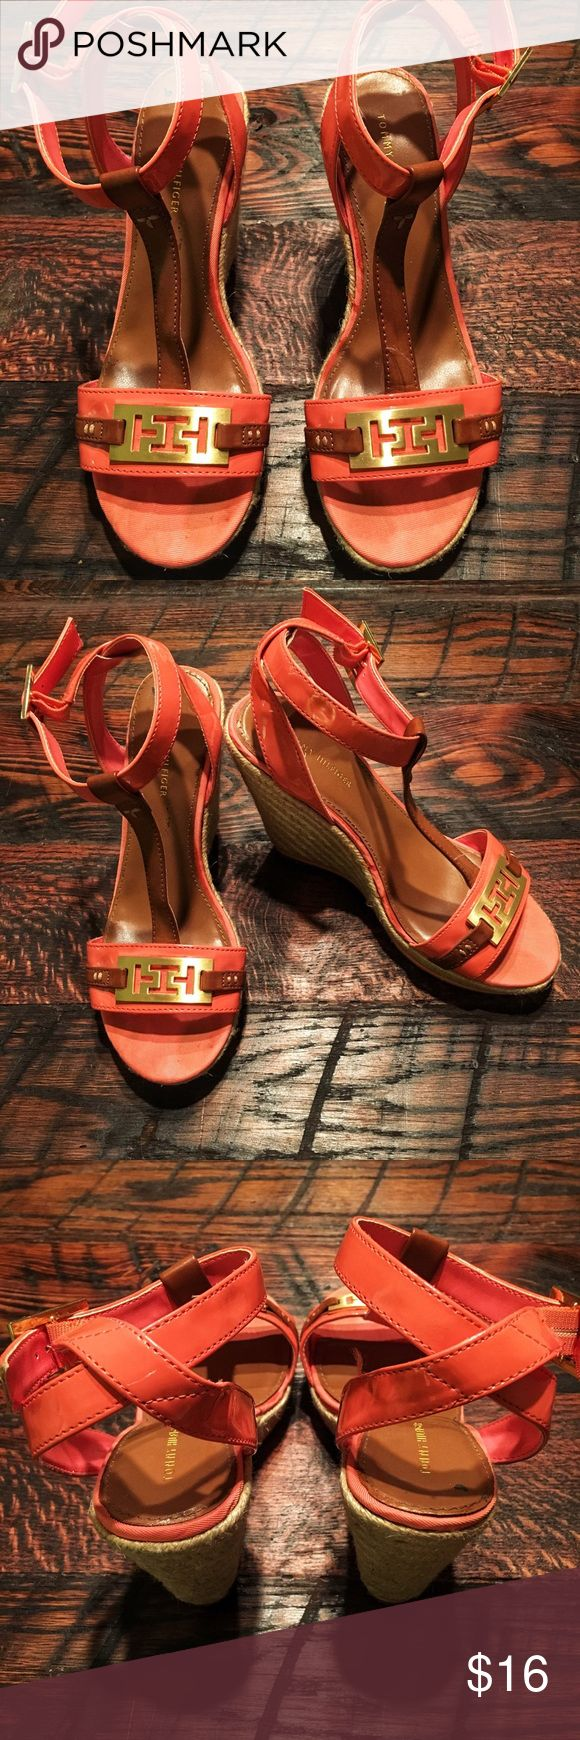 🌸TOMMY HILFIGER Coral Wedges! TOMMY HILFIGER Coral Wedges! Some wear on the wedges and sole but other wise good condition! Tommy Hilfiger Shoes Wedges